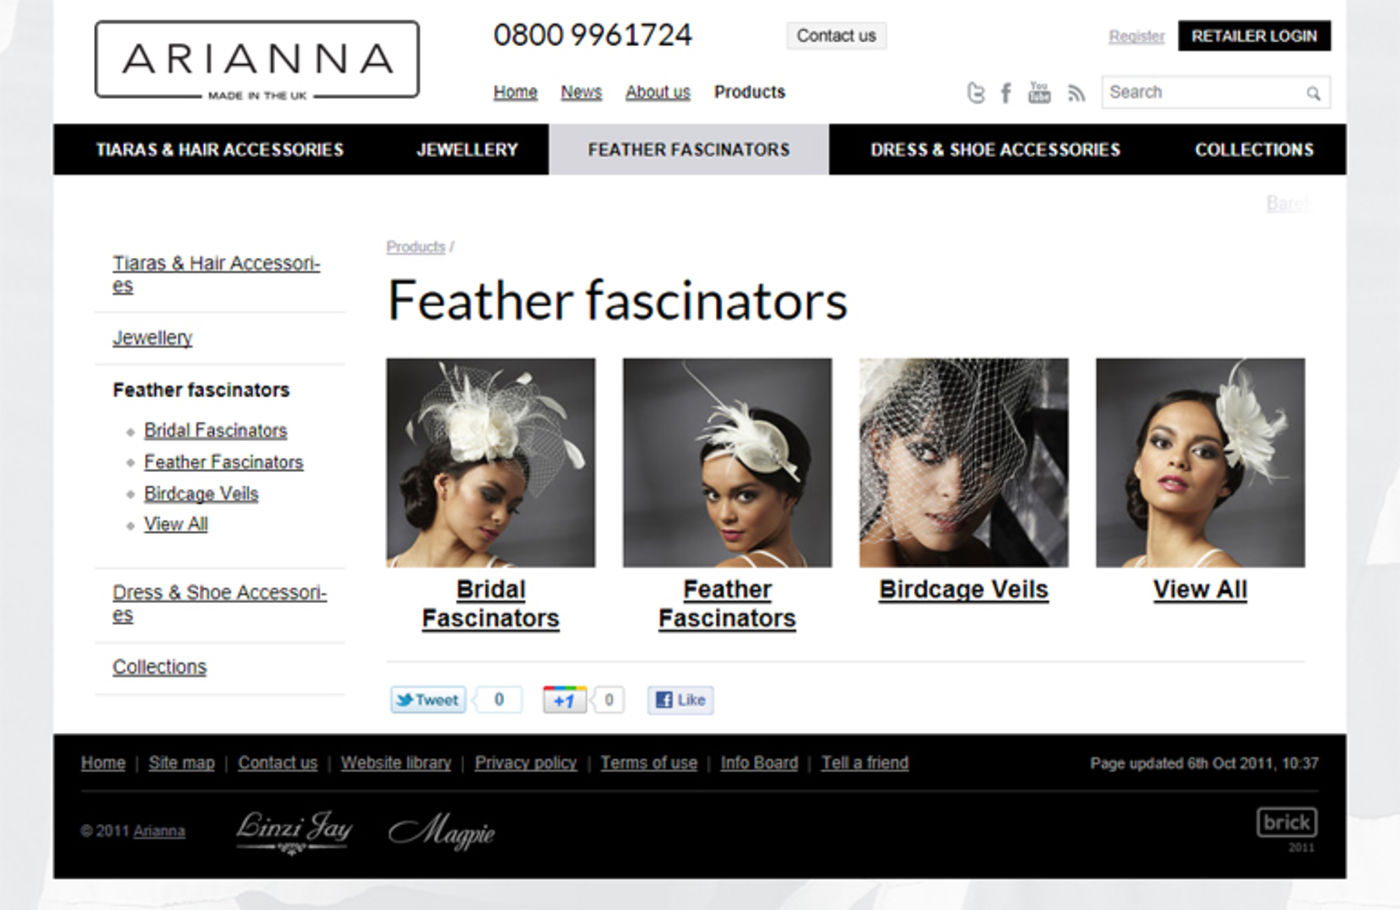 Arianna Products